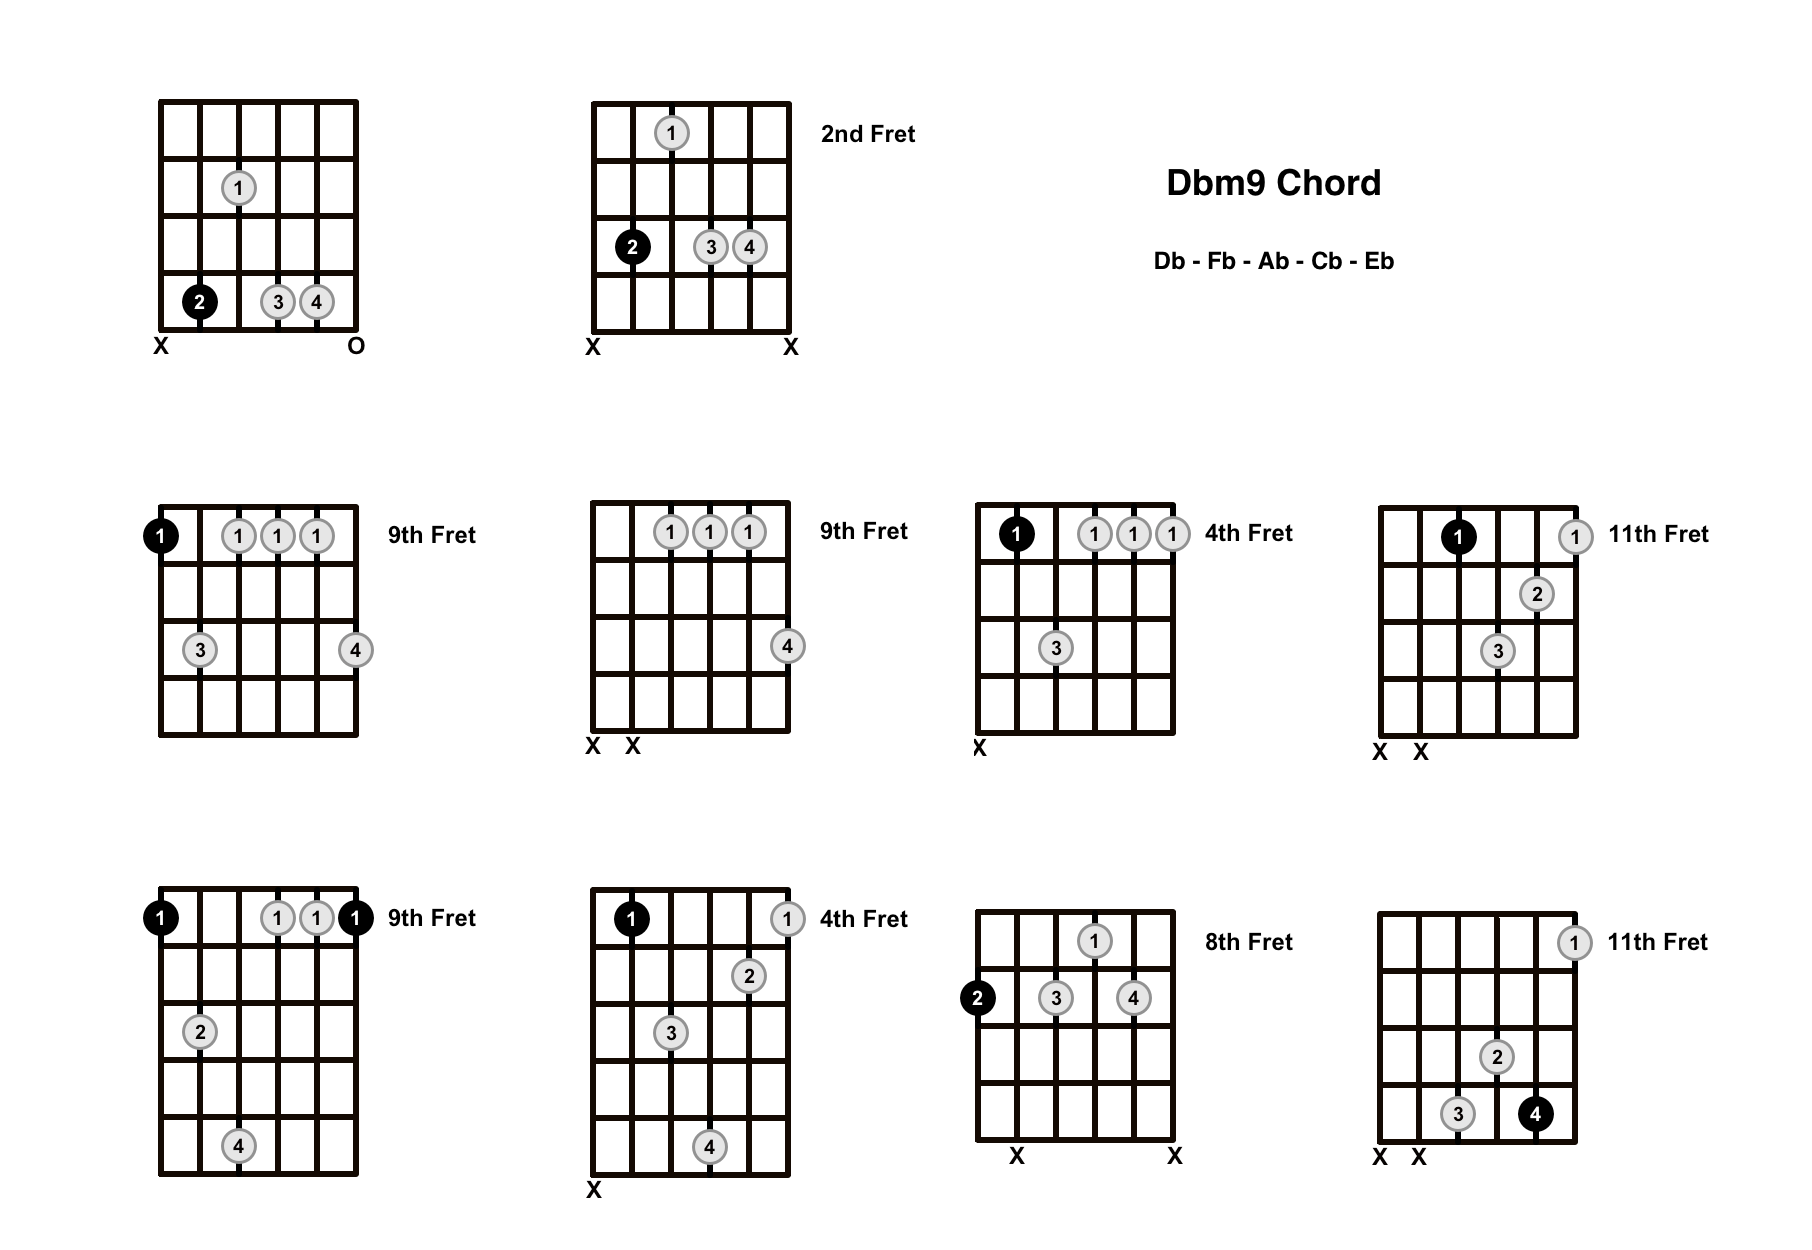 Dbm9 Chord On The Guitar (D Flat Minor 9) – Diagrams, Finger Positions and Theory